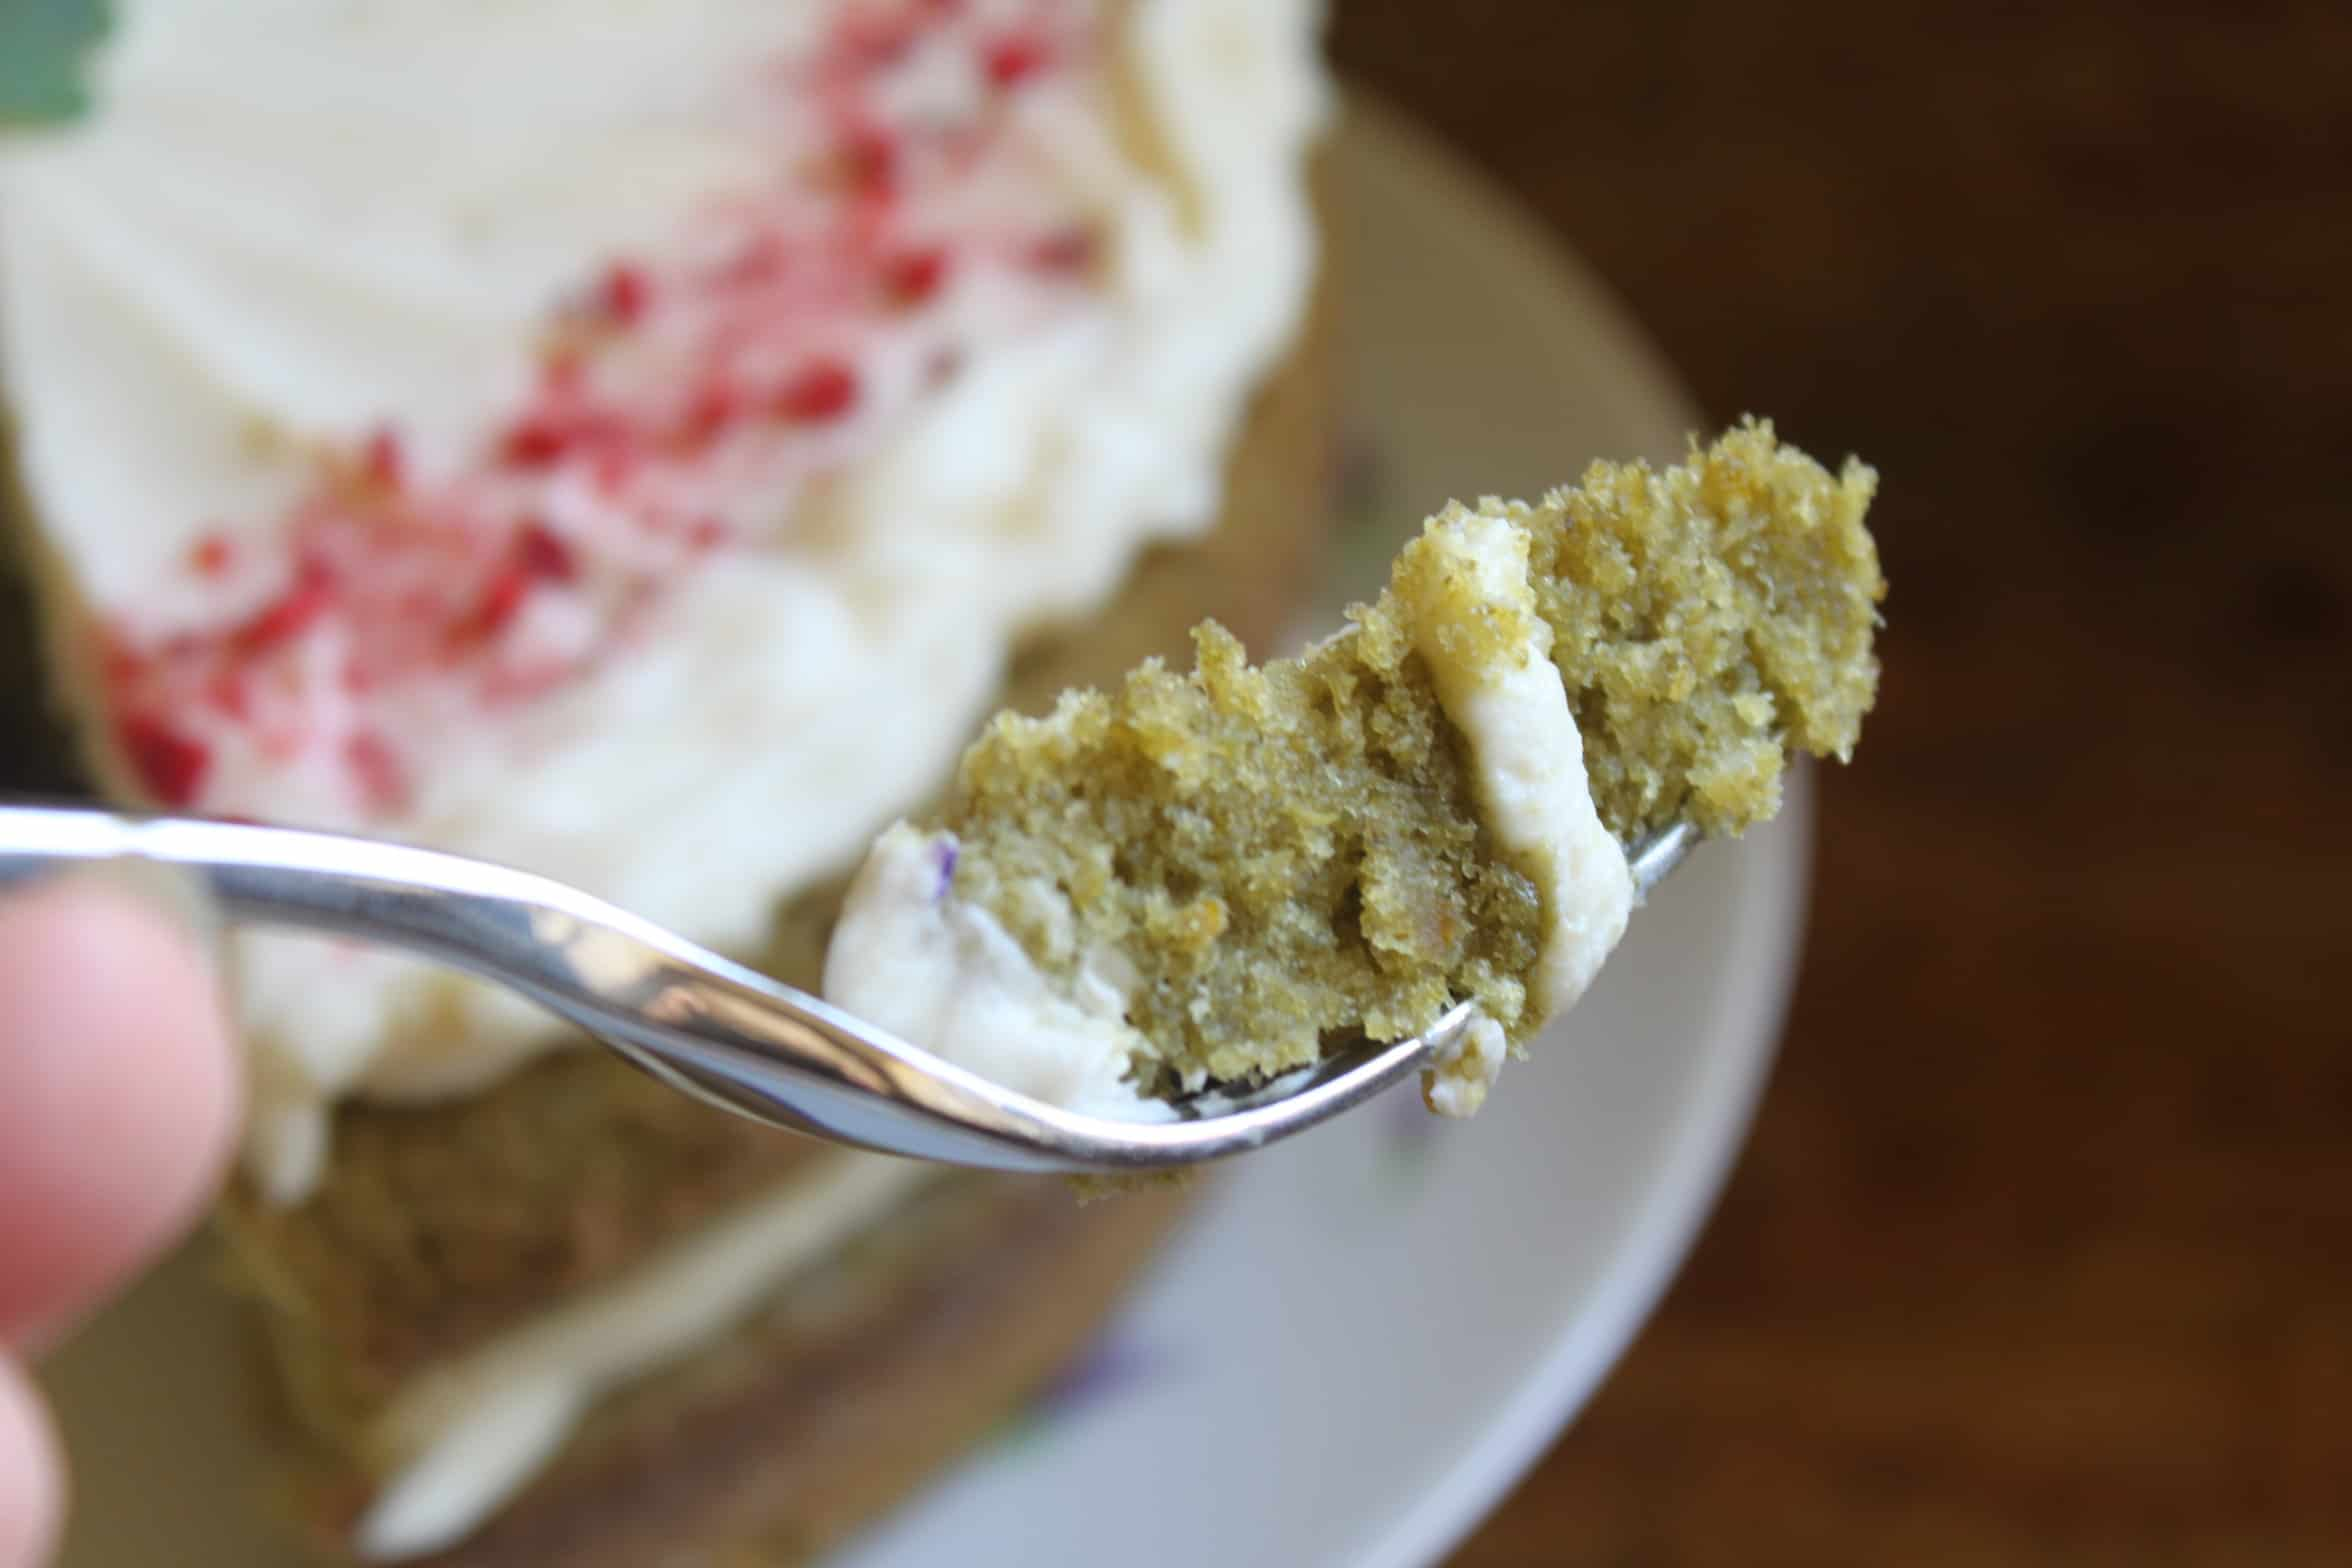 piece of green cake on a fork